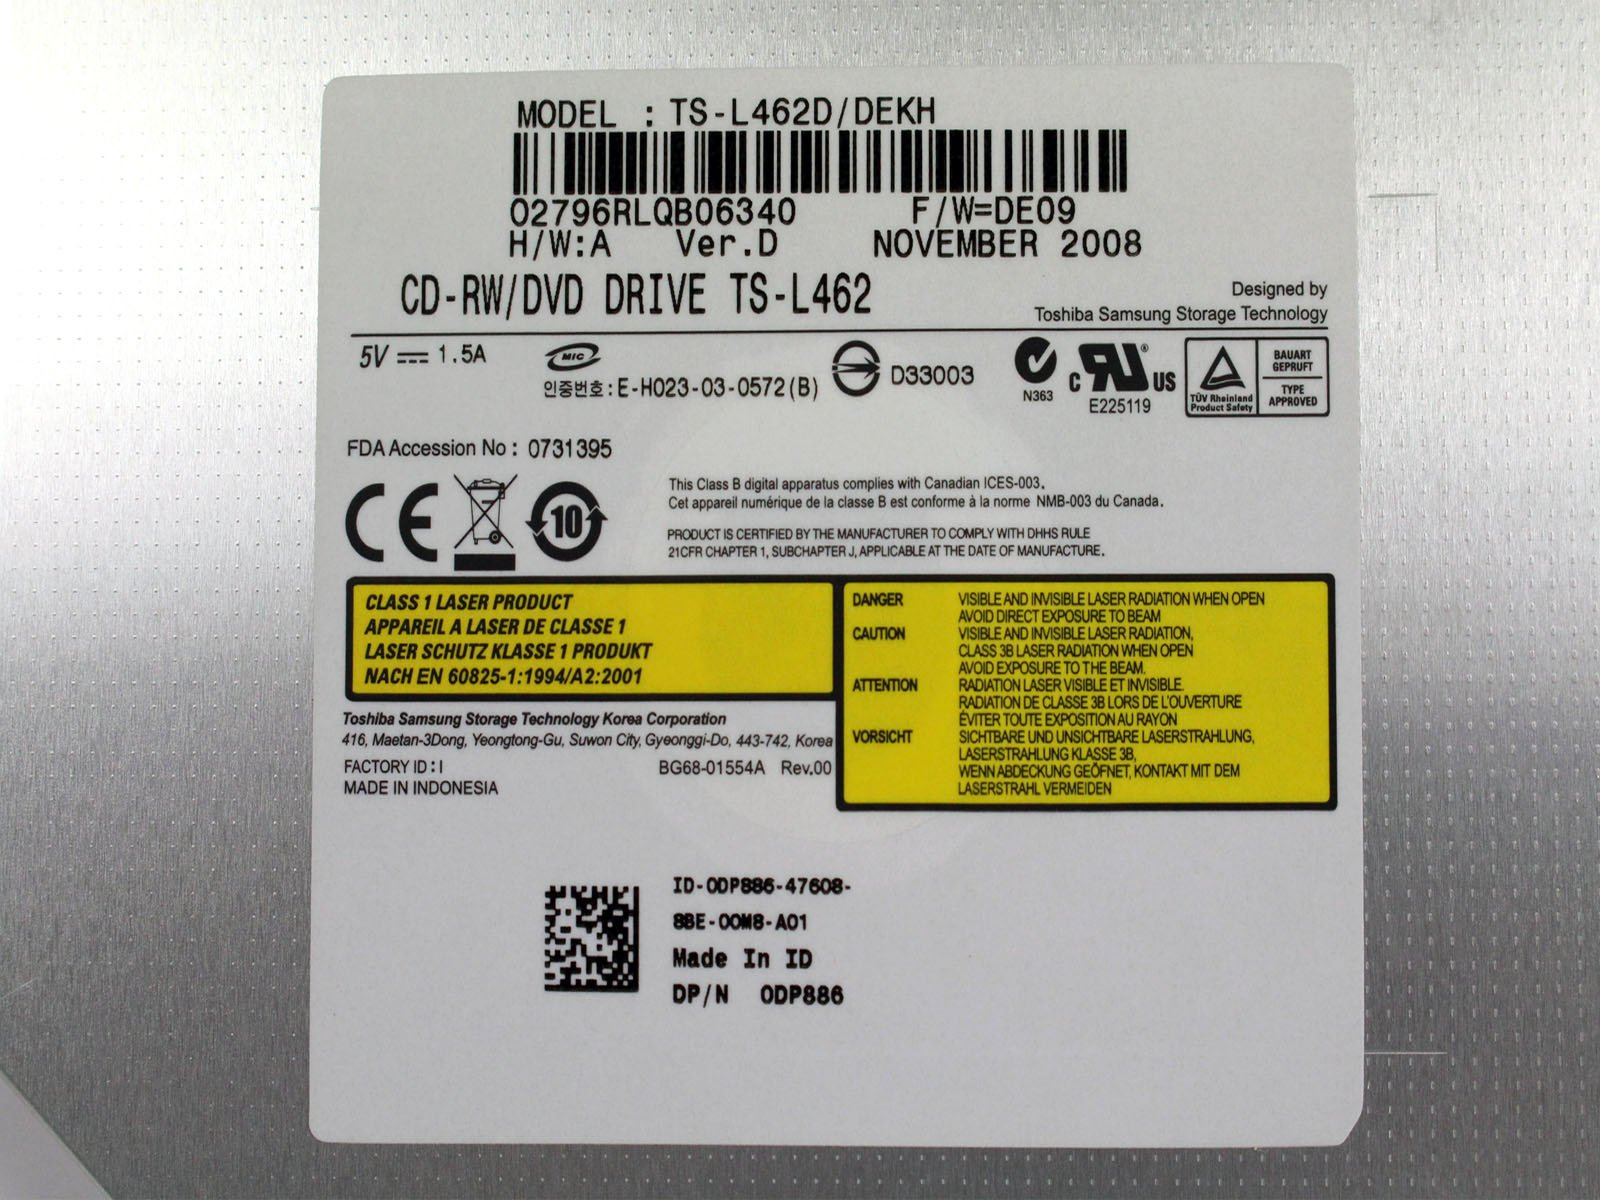 Dell CD-RW/DVD Drive Black TS-L462D/DEXH YX428 Inspiron 1521 by Dell (Image #5)